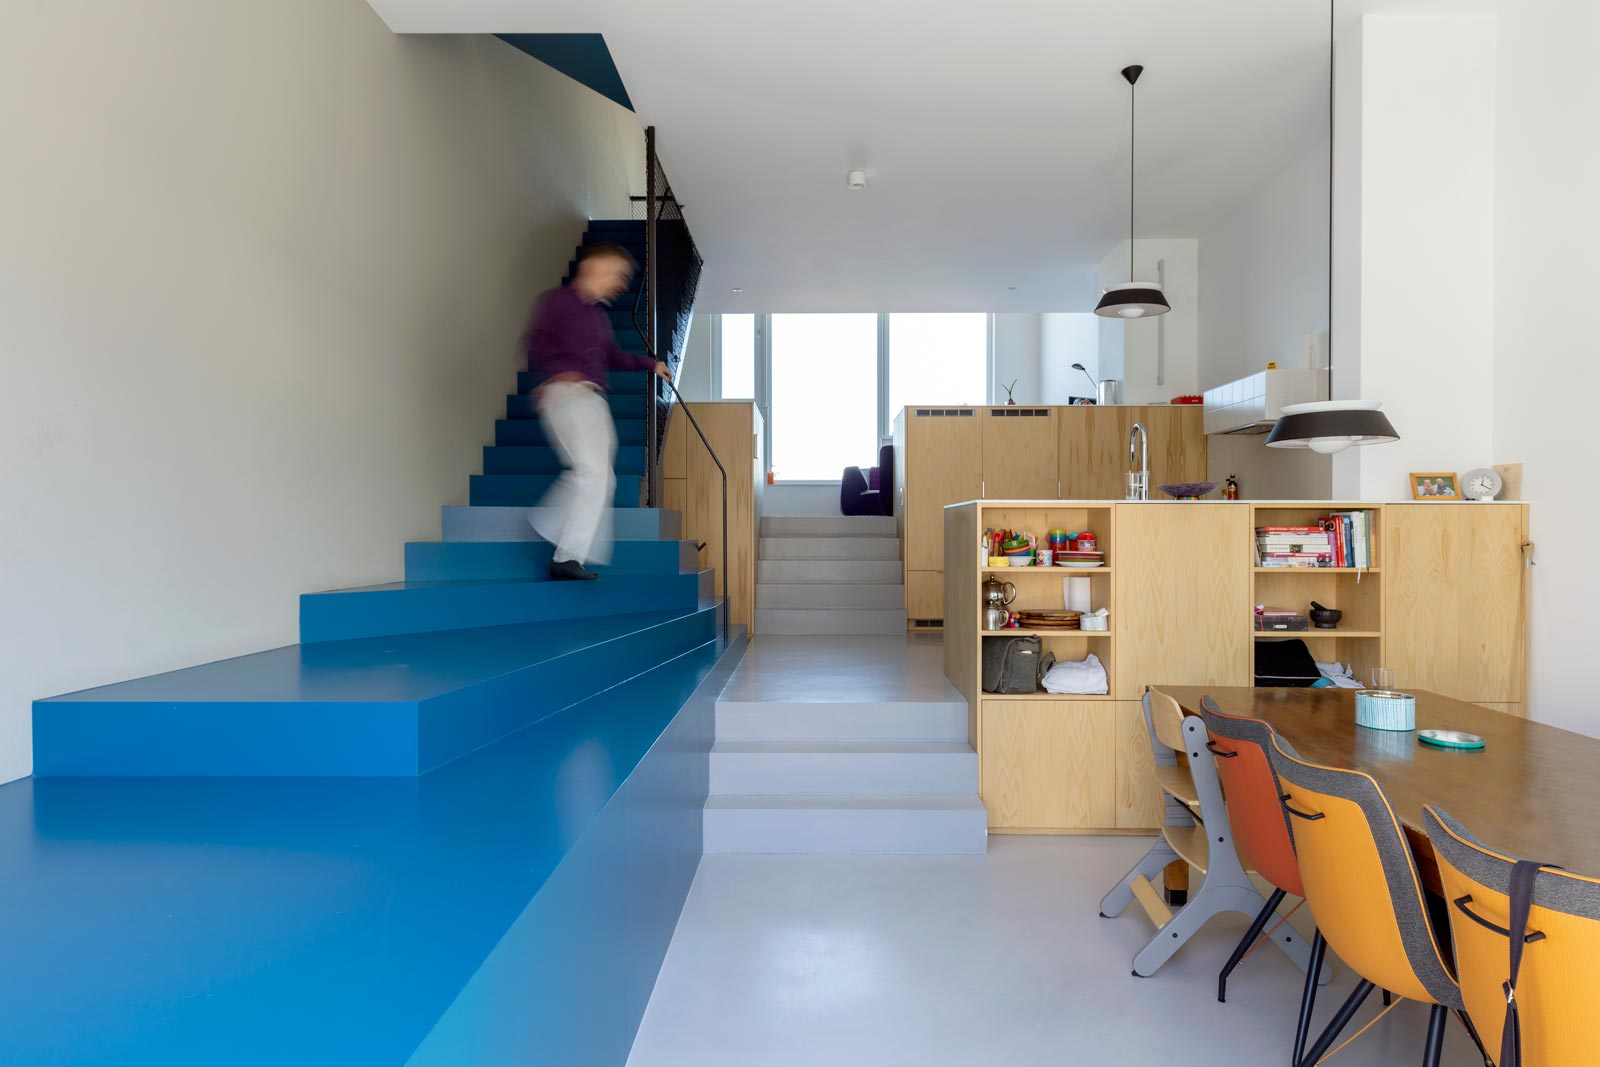 blue house by BETA sculptural staircase and kitchen Evert Klinkenberg Auguste Gus van Oppen